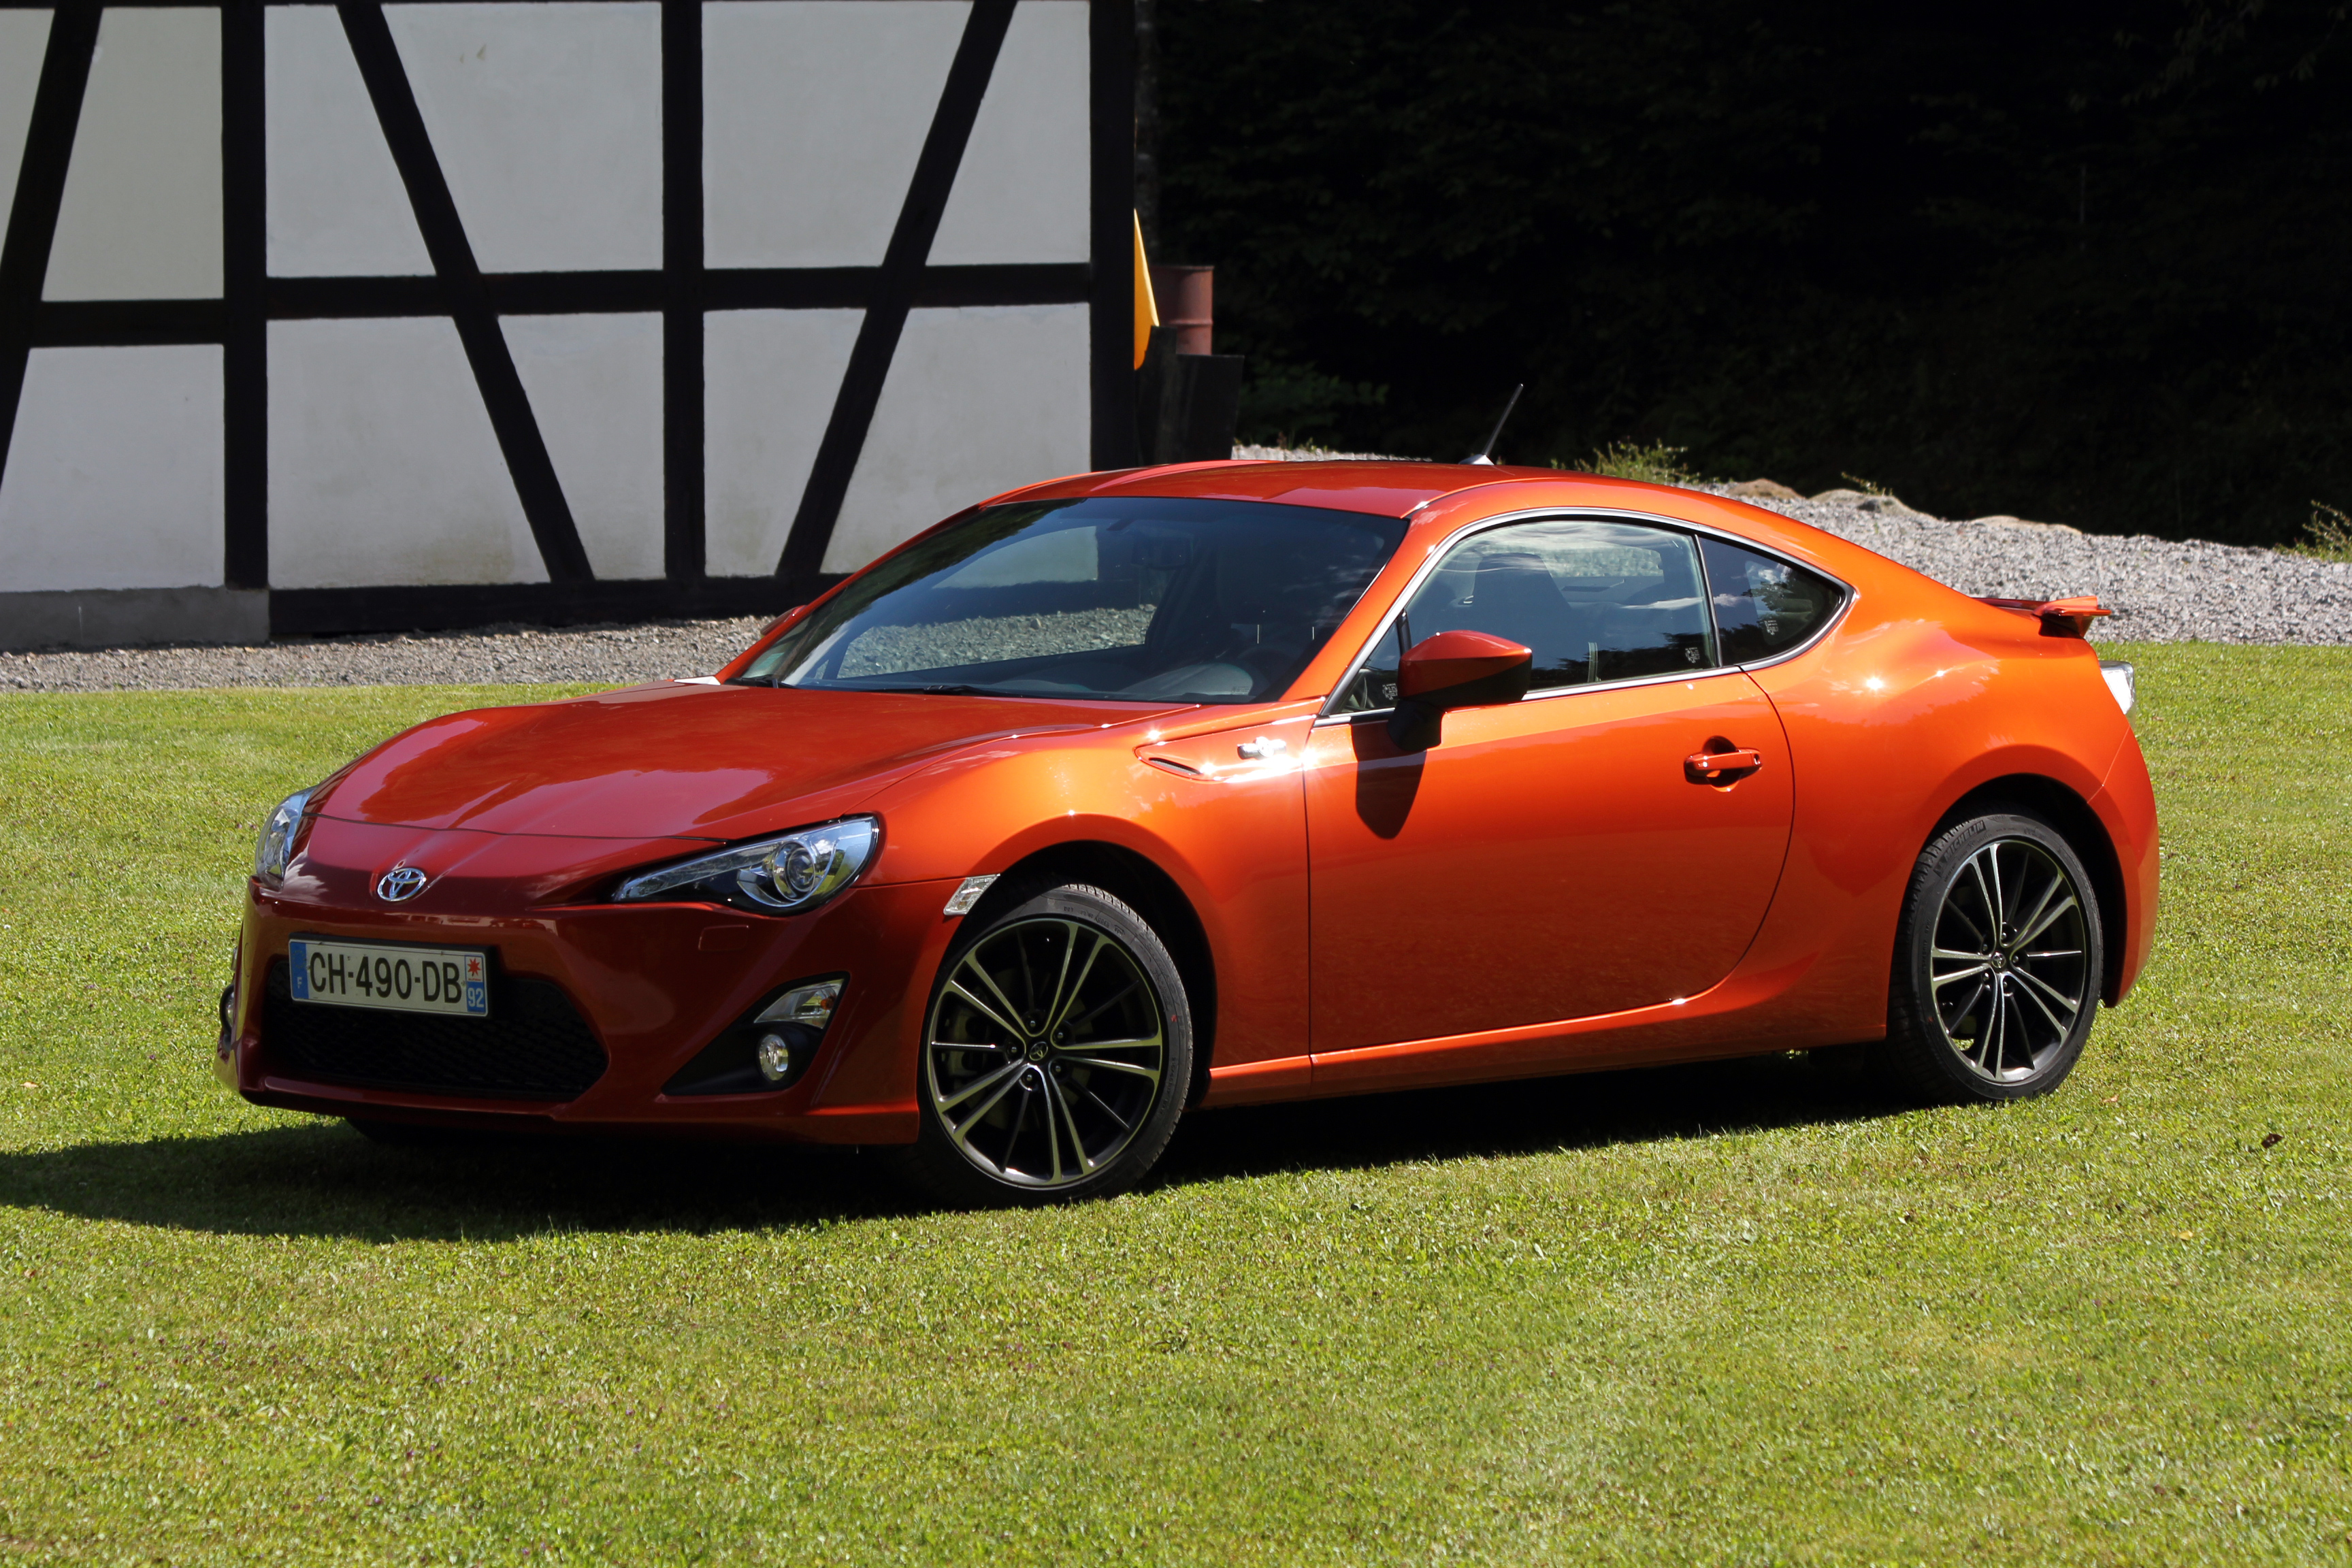 essai vid o toyota gt86 presque parfait. Black Bedroom Furniture Sets. Home Design Ideas